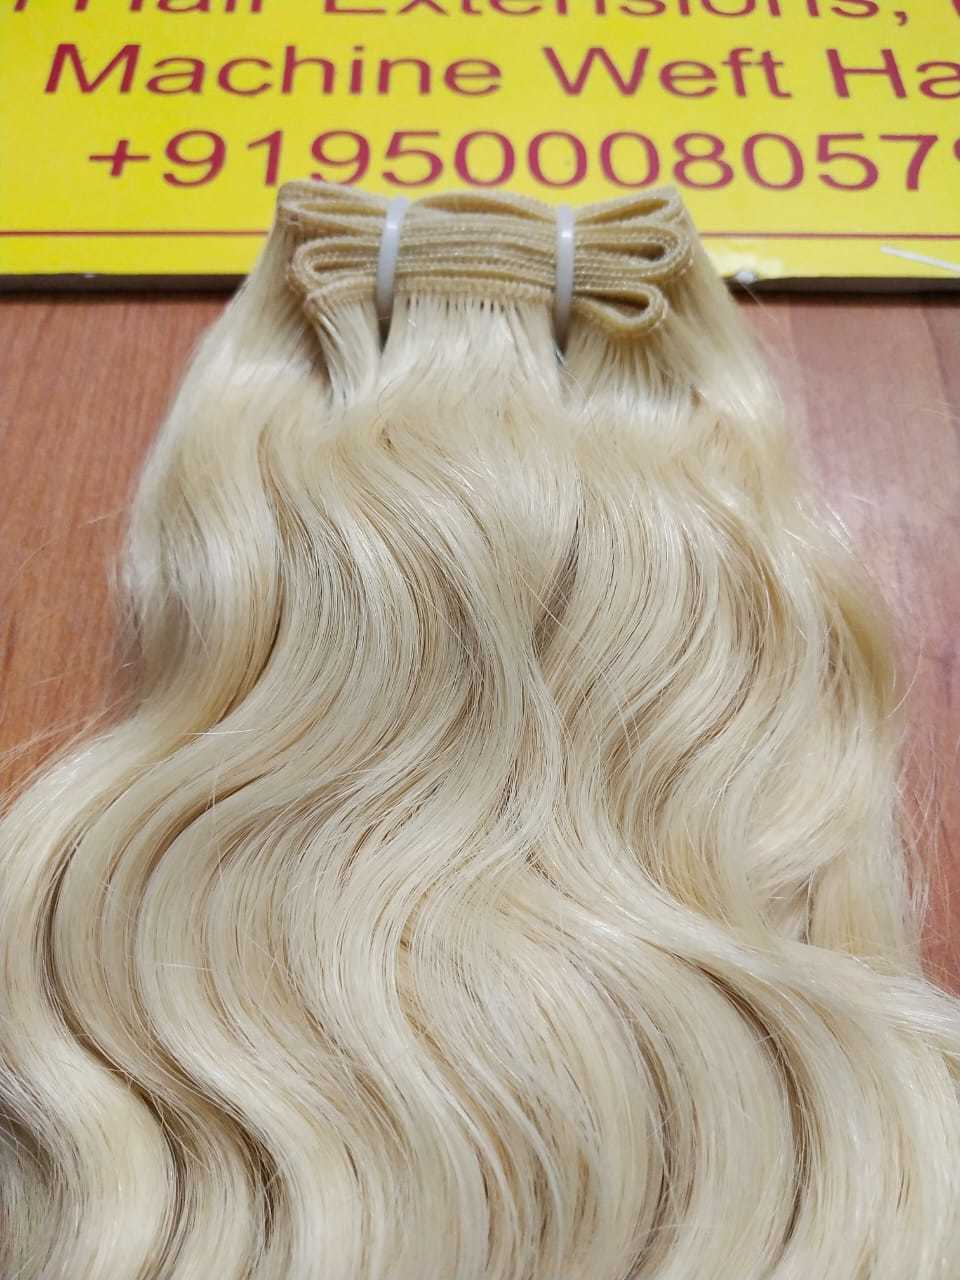 INDIAN VIRGIN WEAVE HAIR WEFT